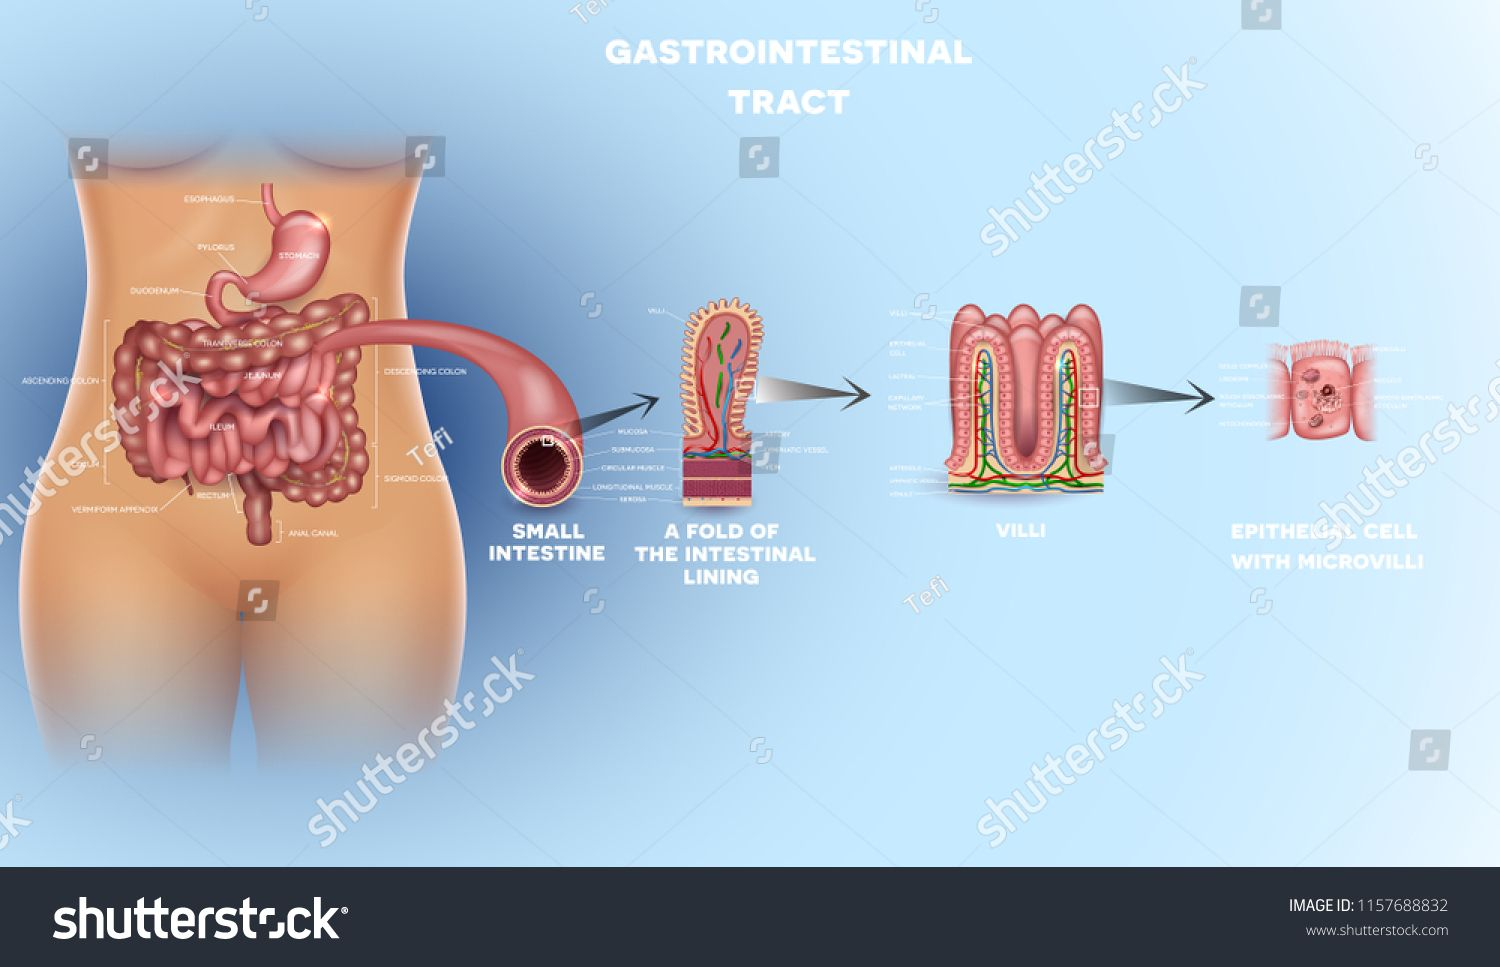 Gastrointestinal Tract Anatomy Intestinal Villi Small Intestine